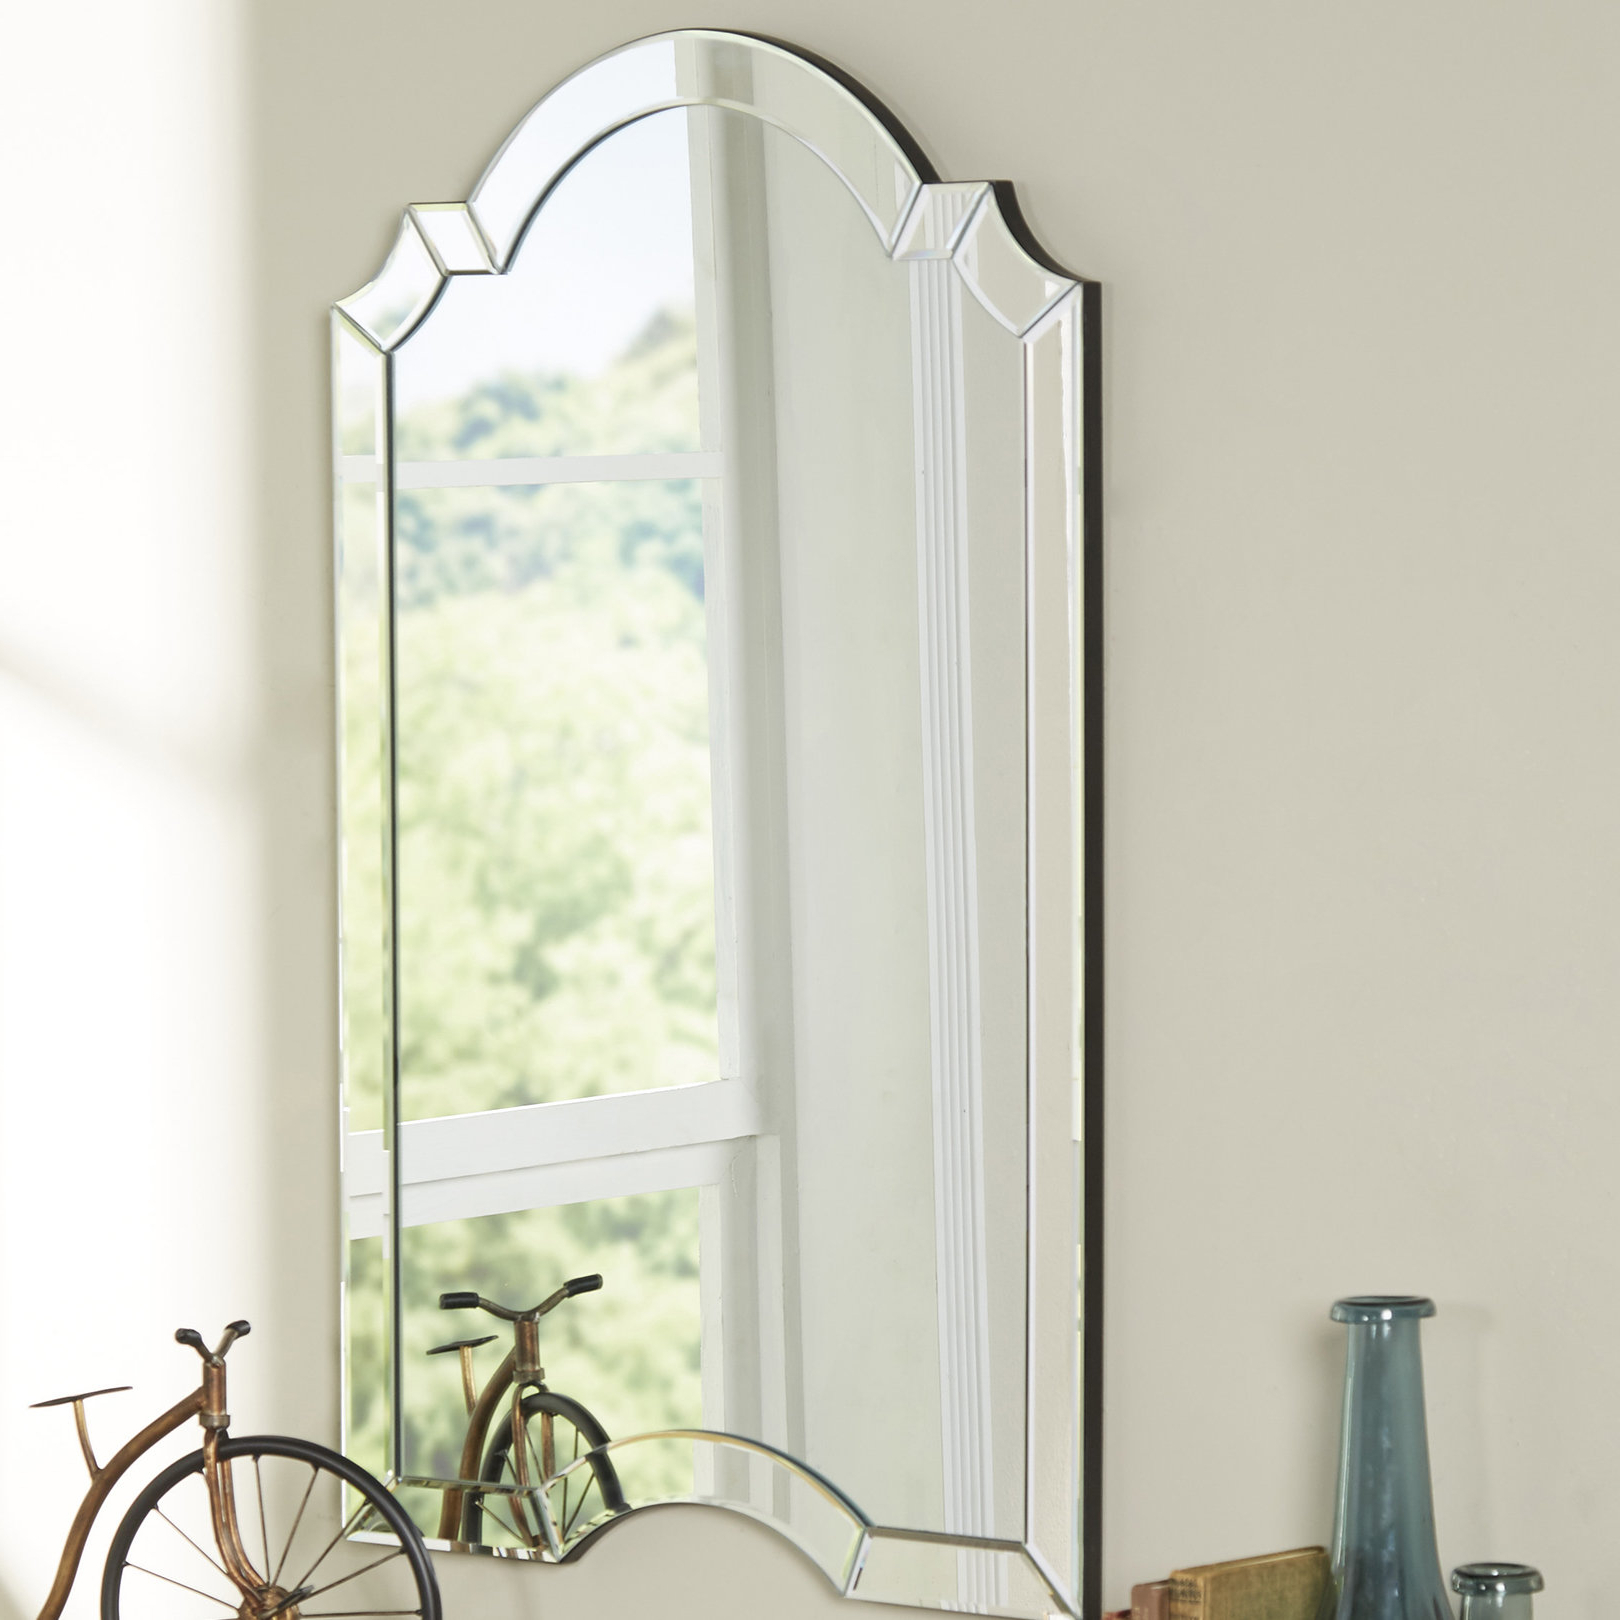 Best And Newest Willa Arlo Interiors Ekaterina Arch/crowned Top Wall Mirror Regarding Ekaterina Arch/crowned Top Wall Mirrors (View 4 of 20)